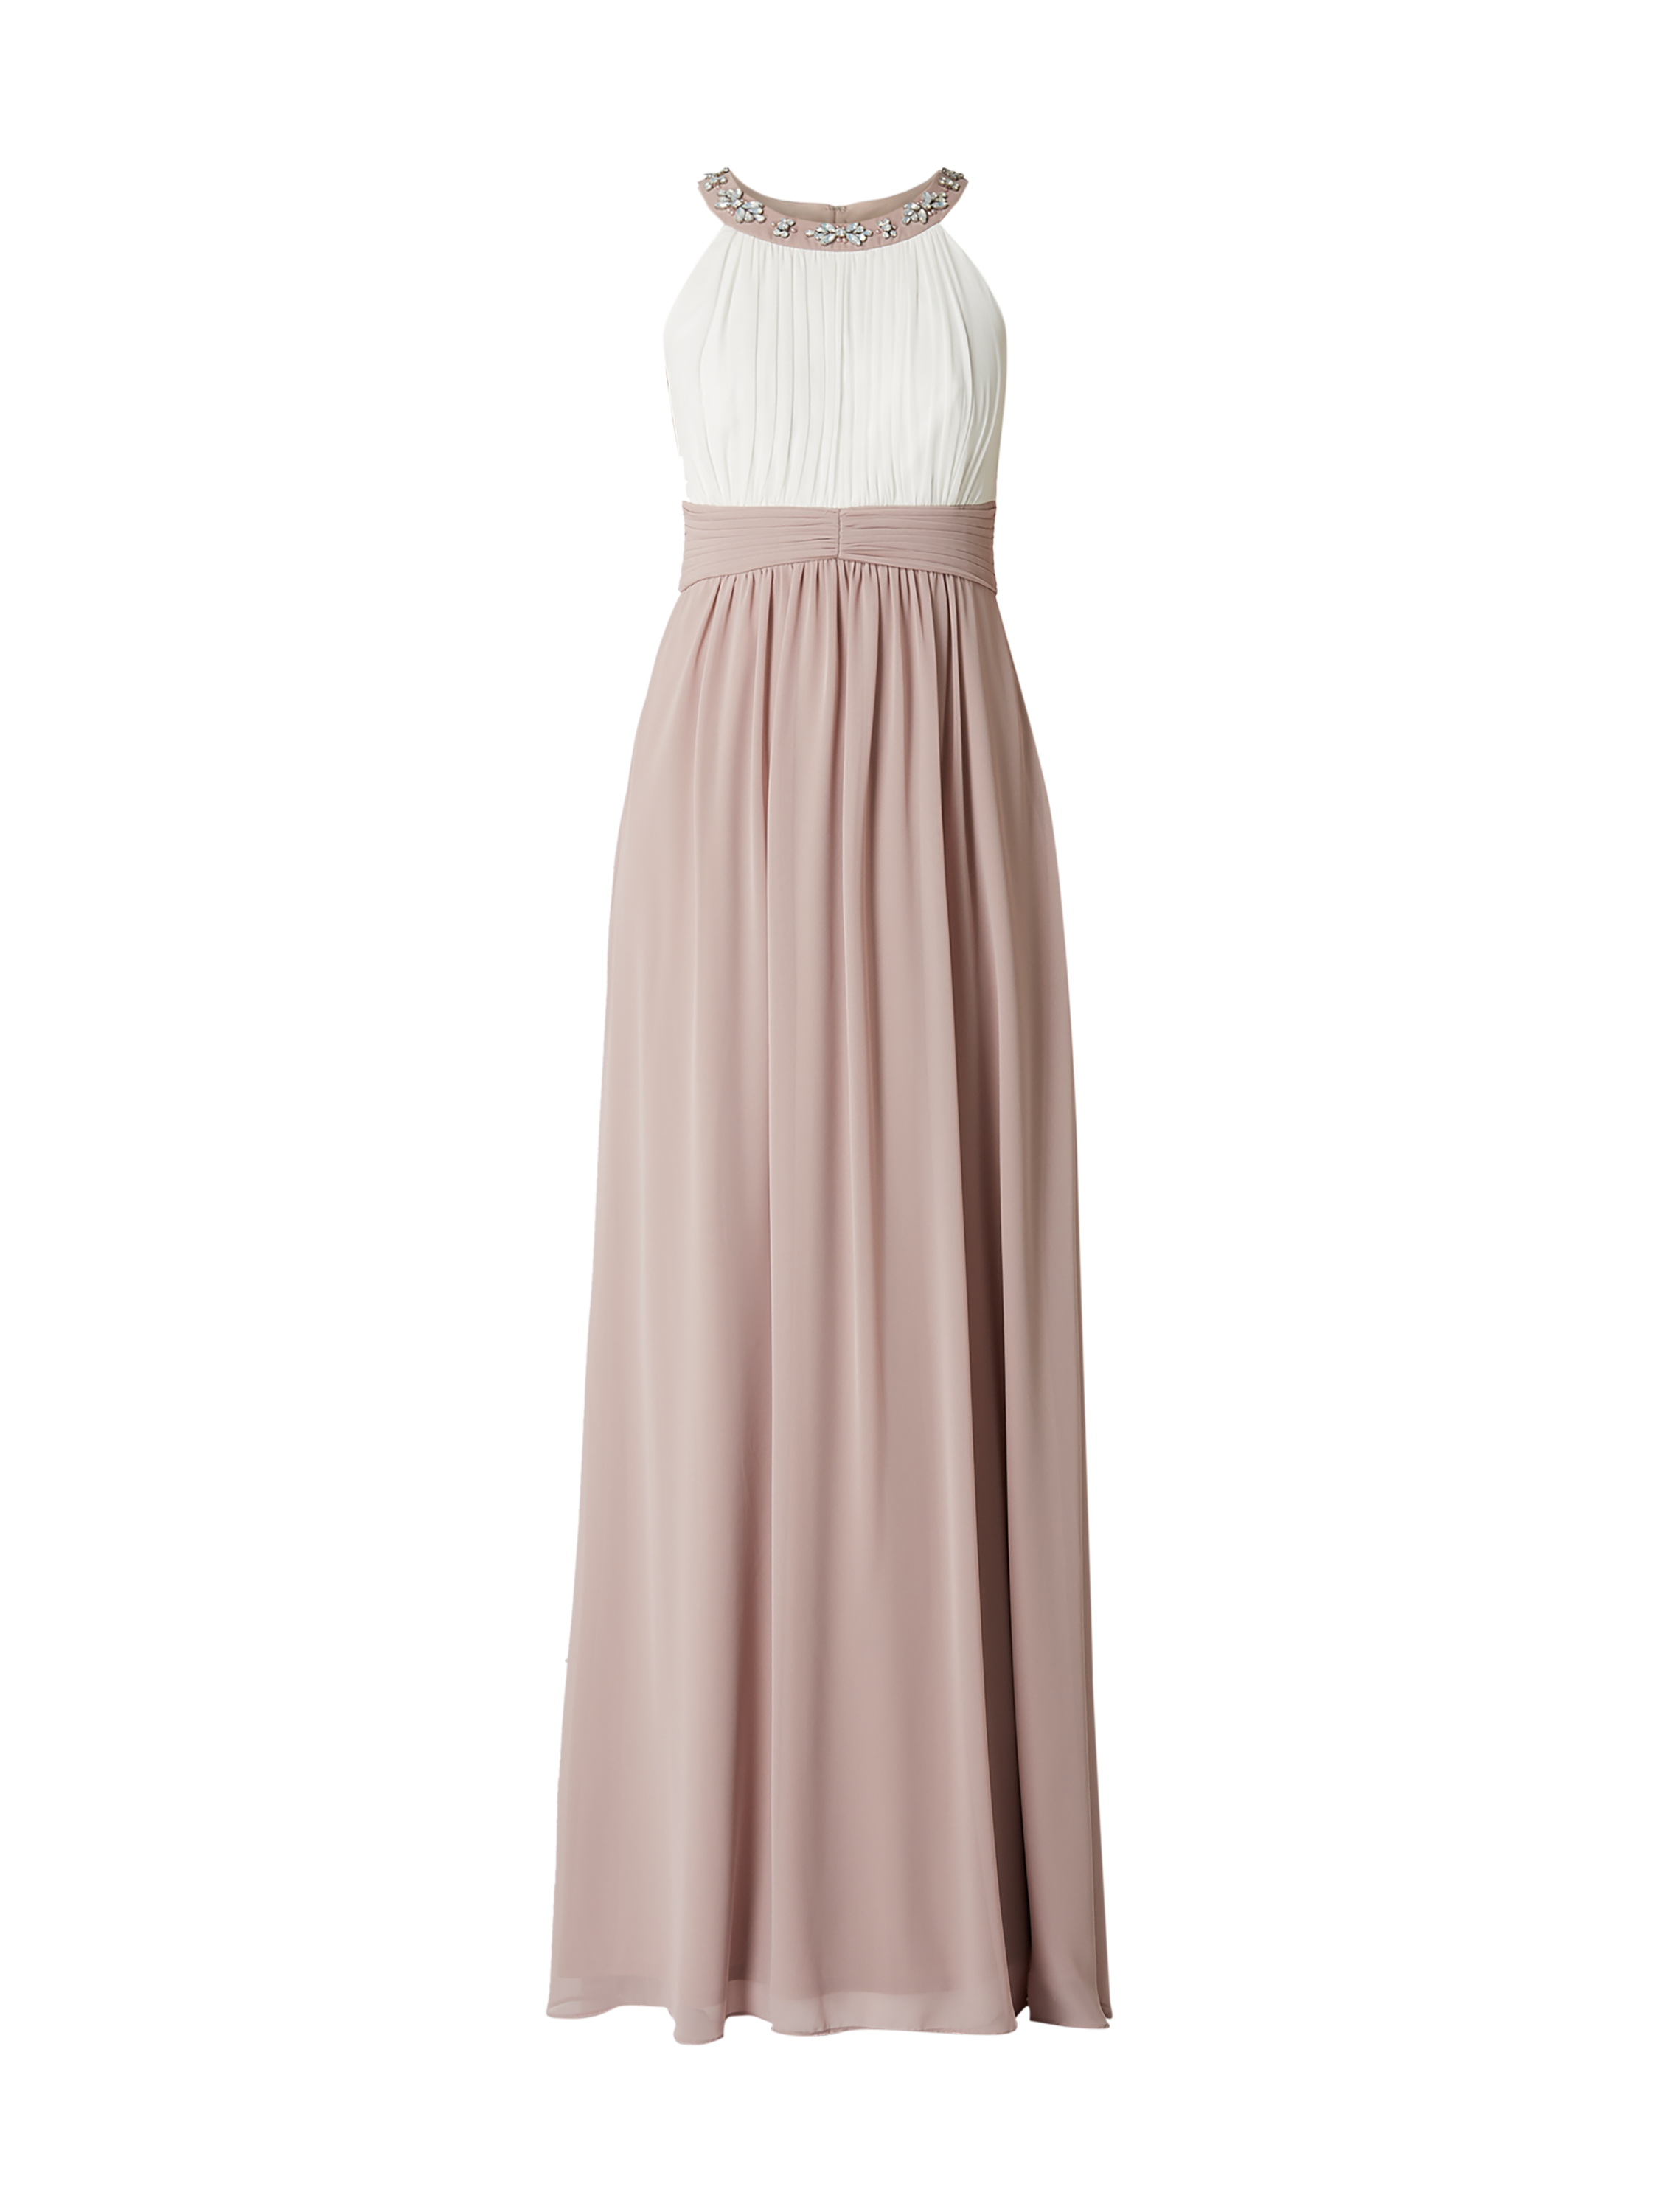 jake*s cocktail – two-tone-abendkleid mit blüten-applikationen – mauve